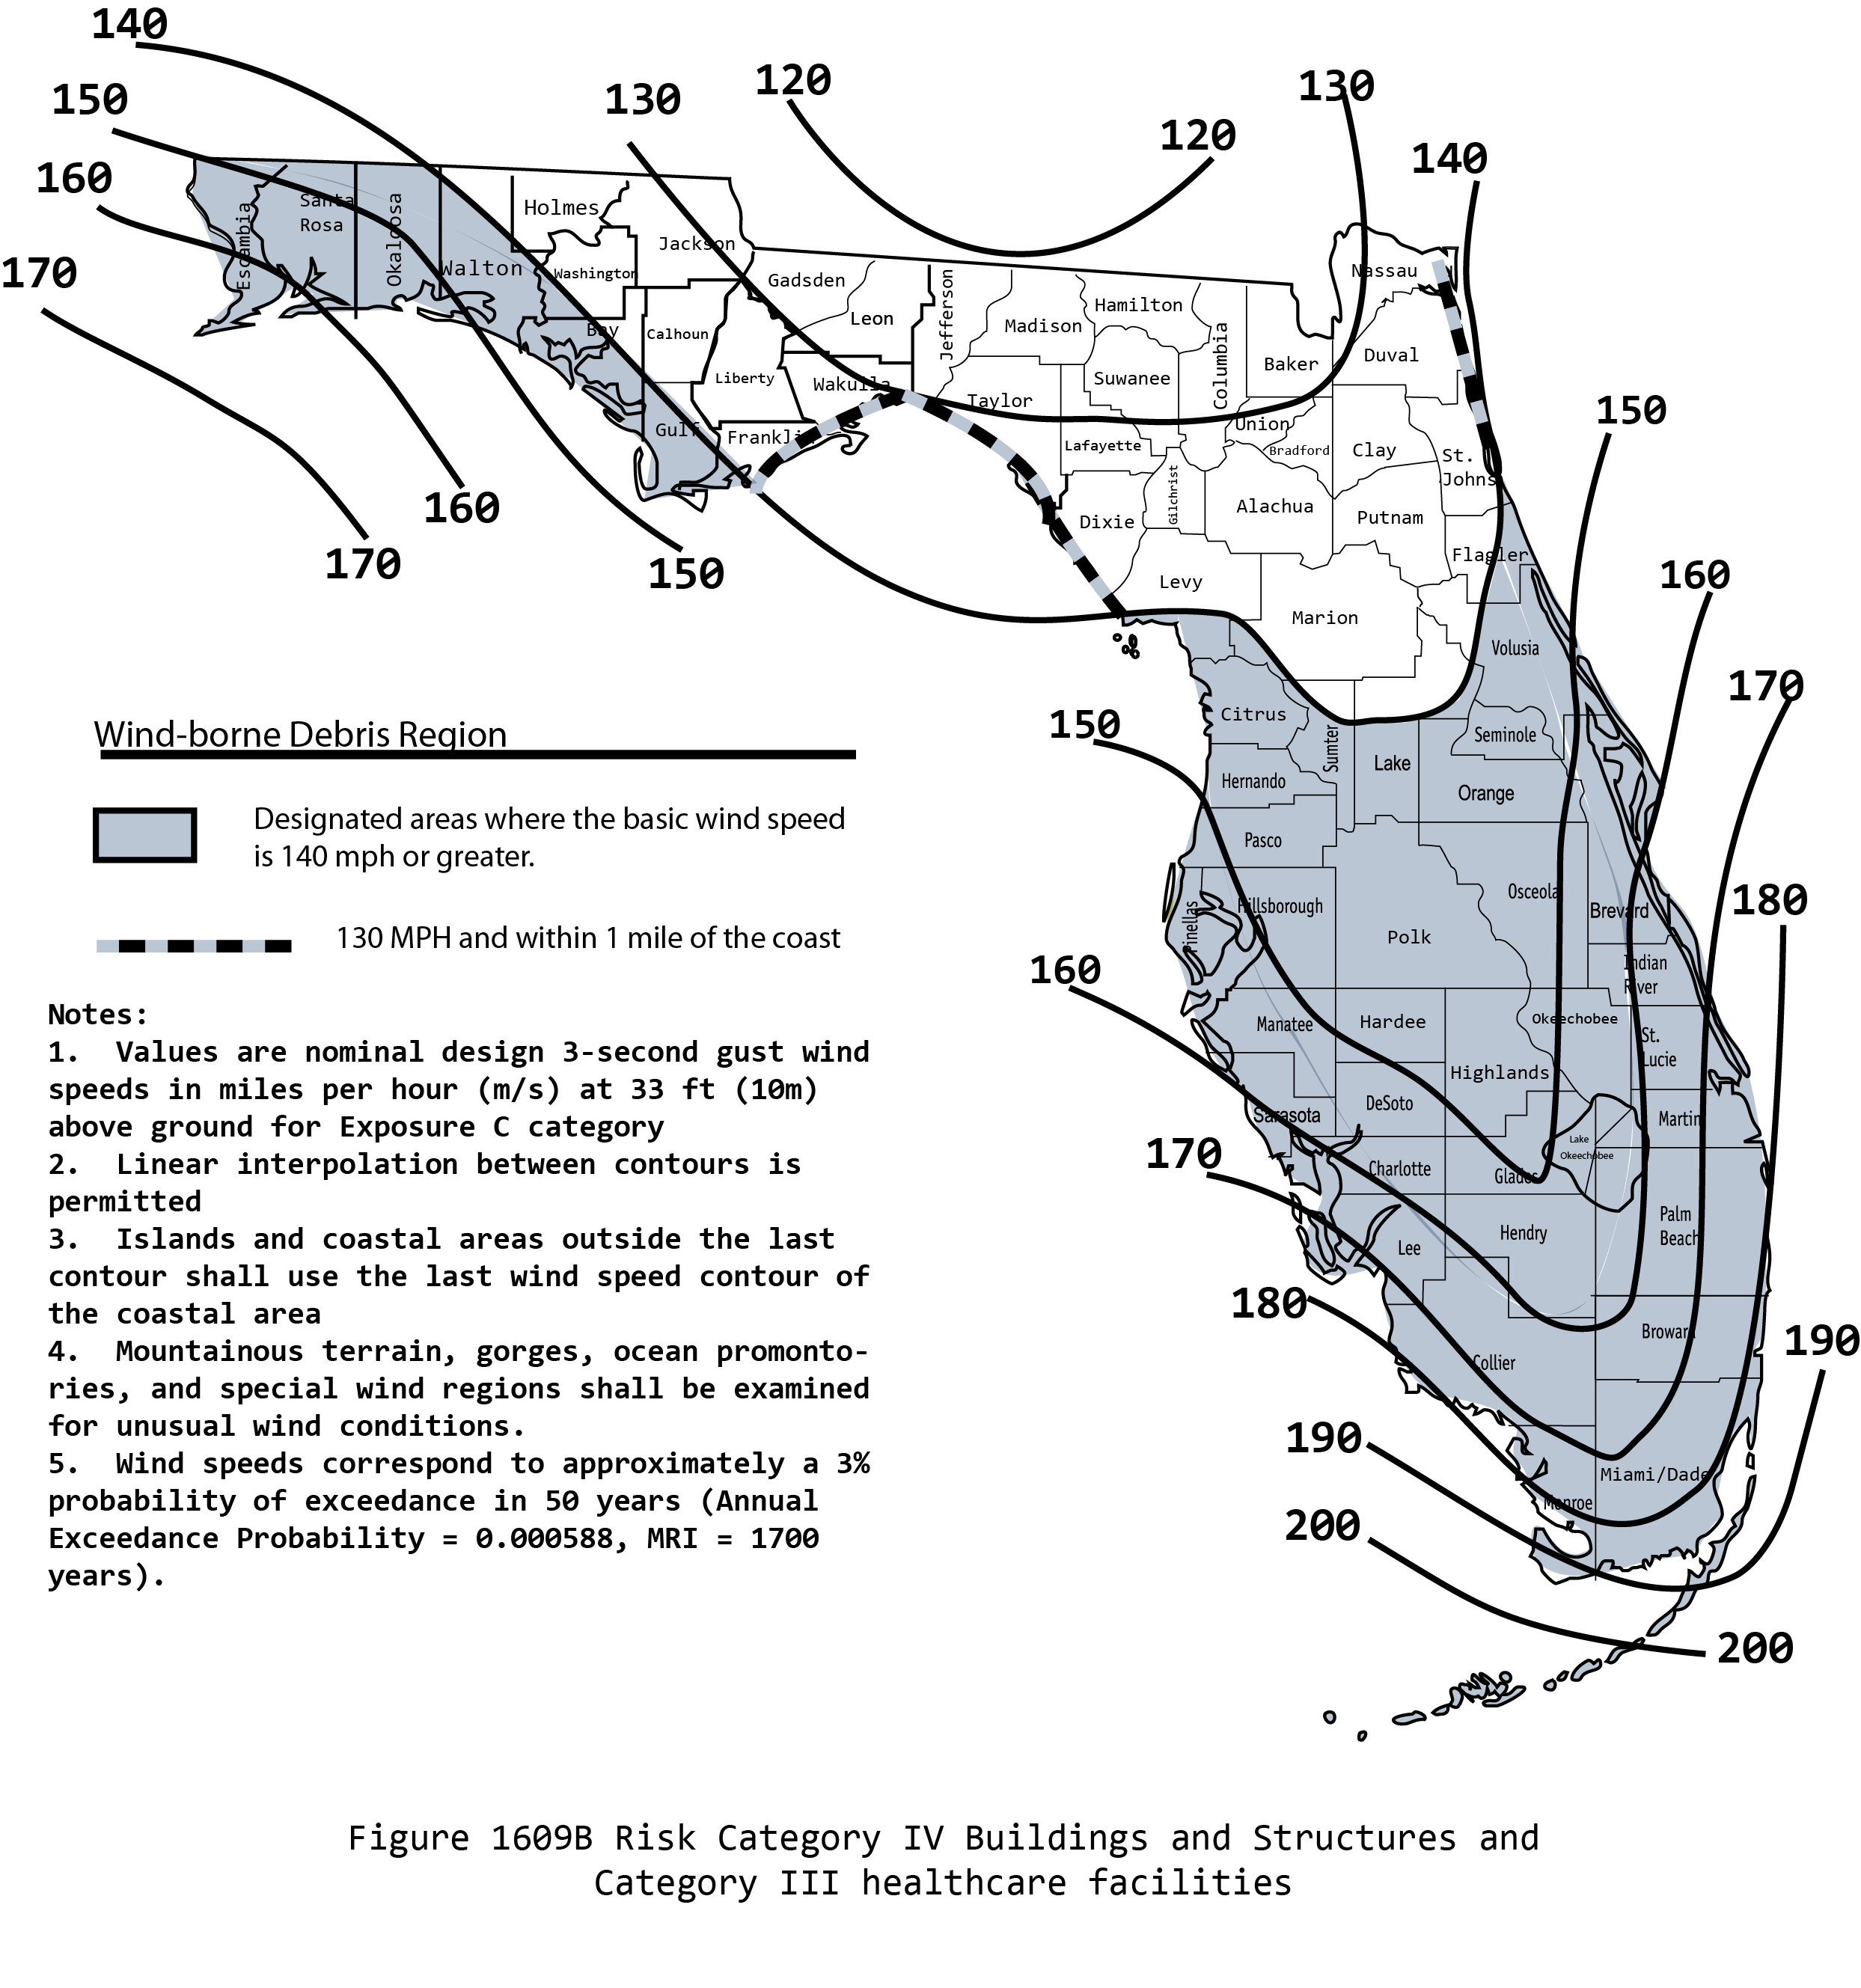 Florida Wind Zone Map 2015 Bnhspine Com